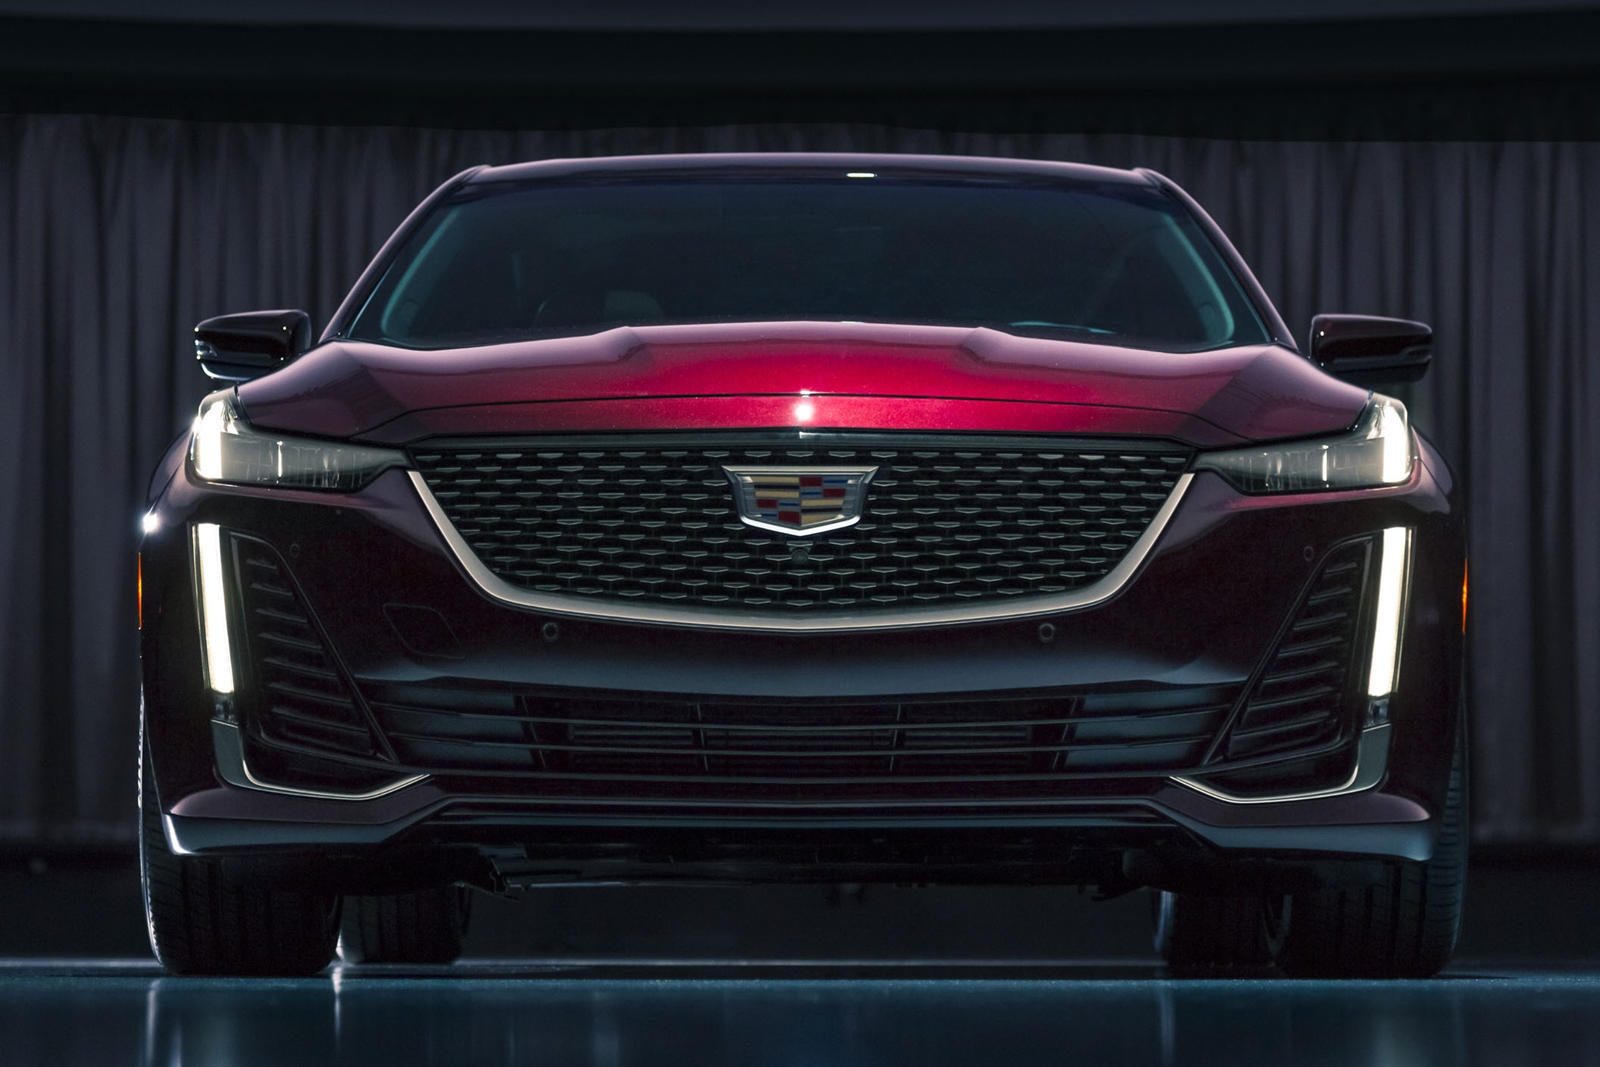 Feast Your Eyes On The All New 2020 Cadillac CT5 Sedan